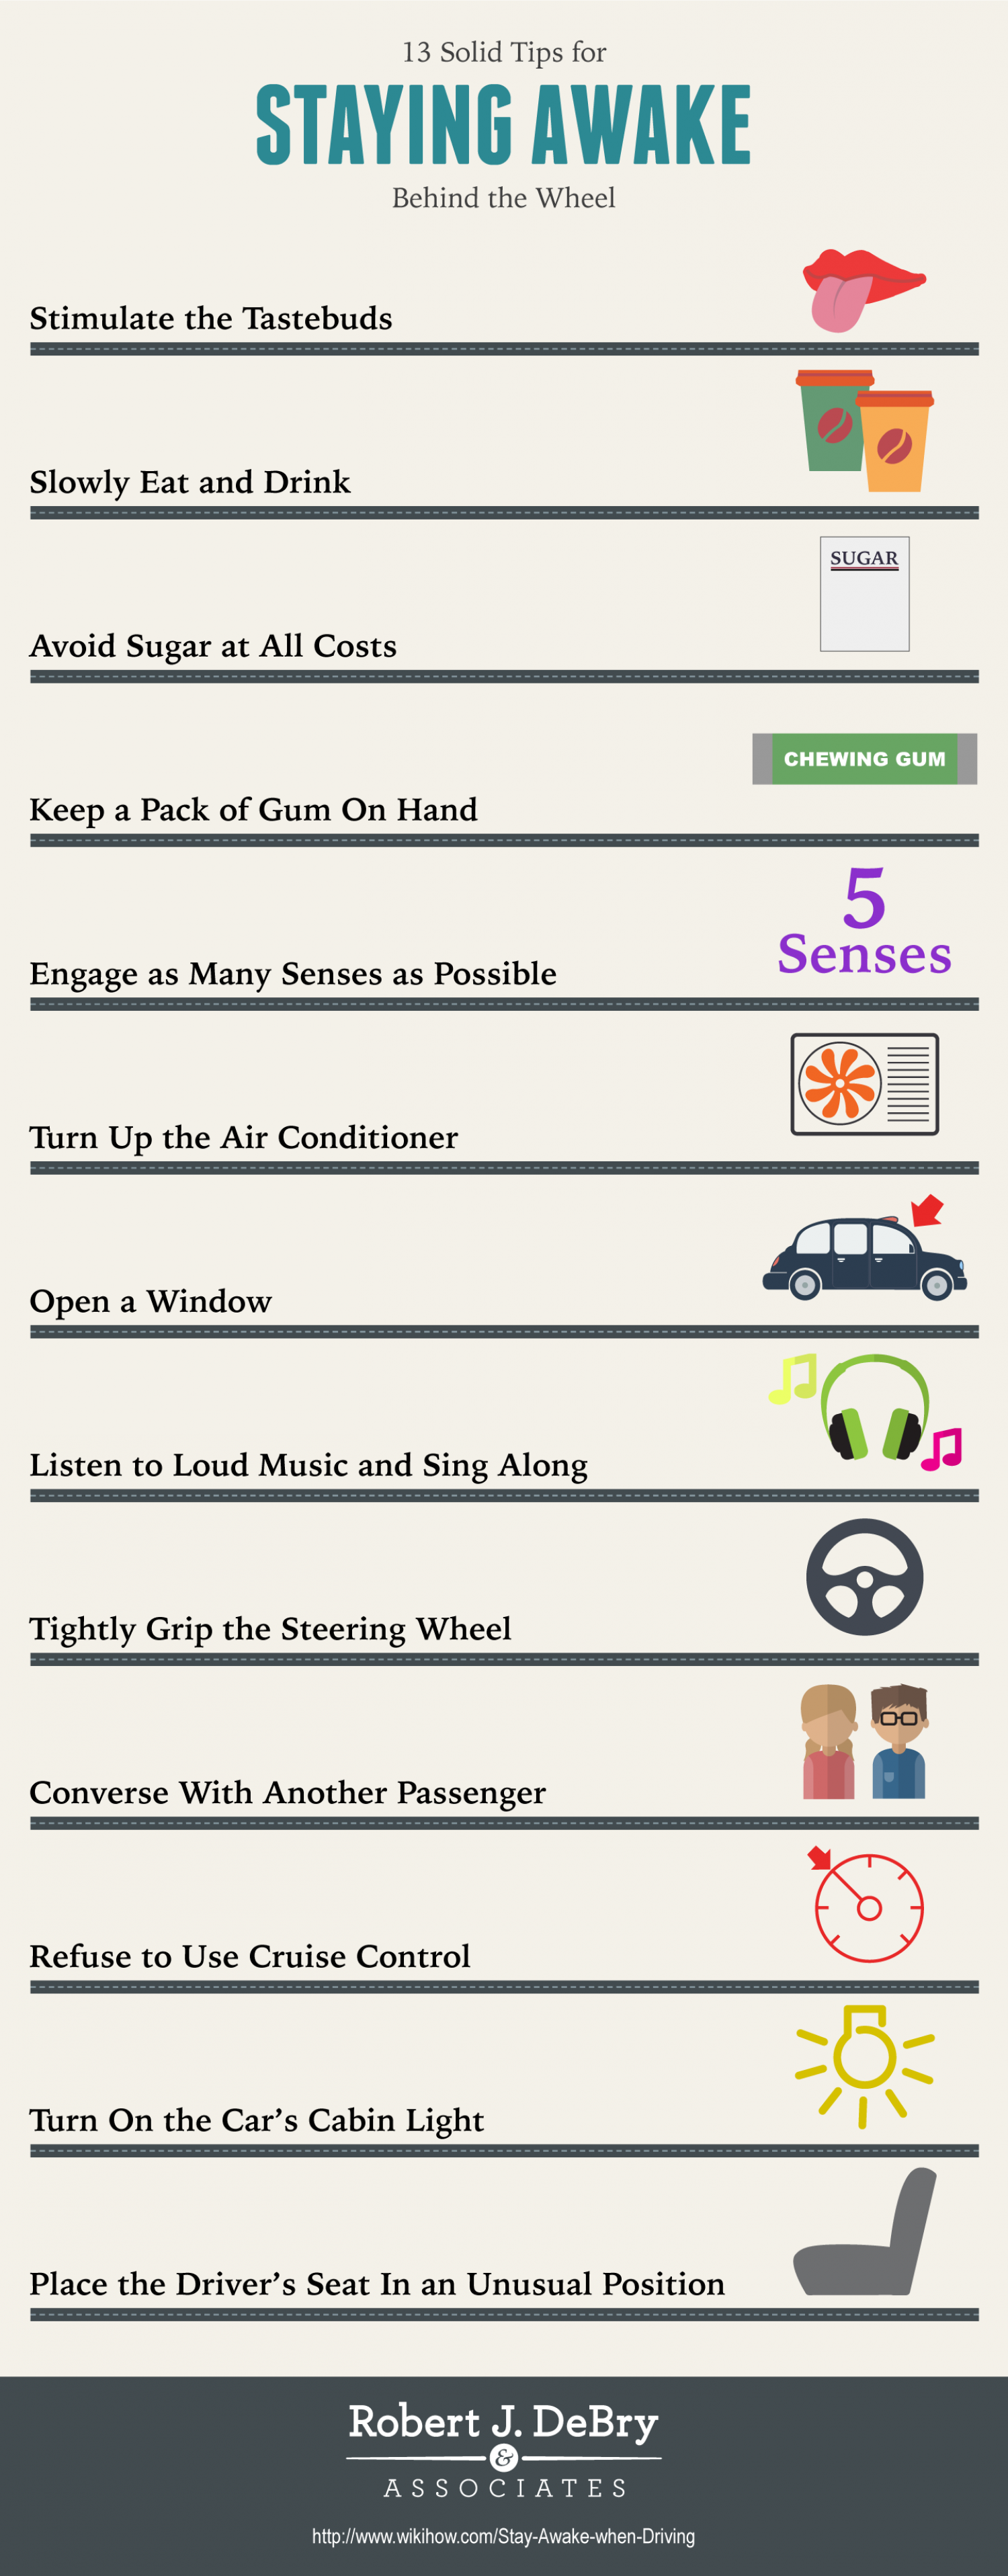 13 Solid Tips for Staying Awake Behind the Wheel Infographic